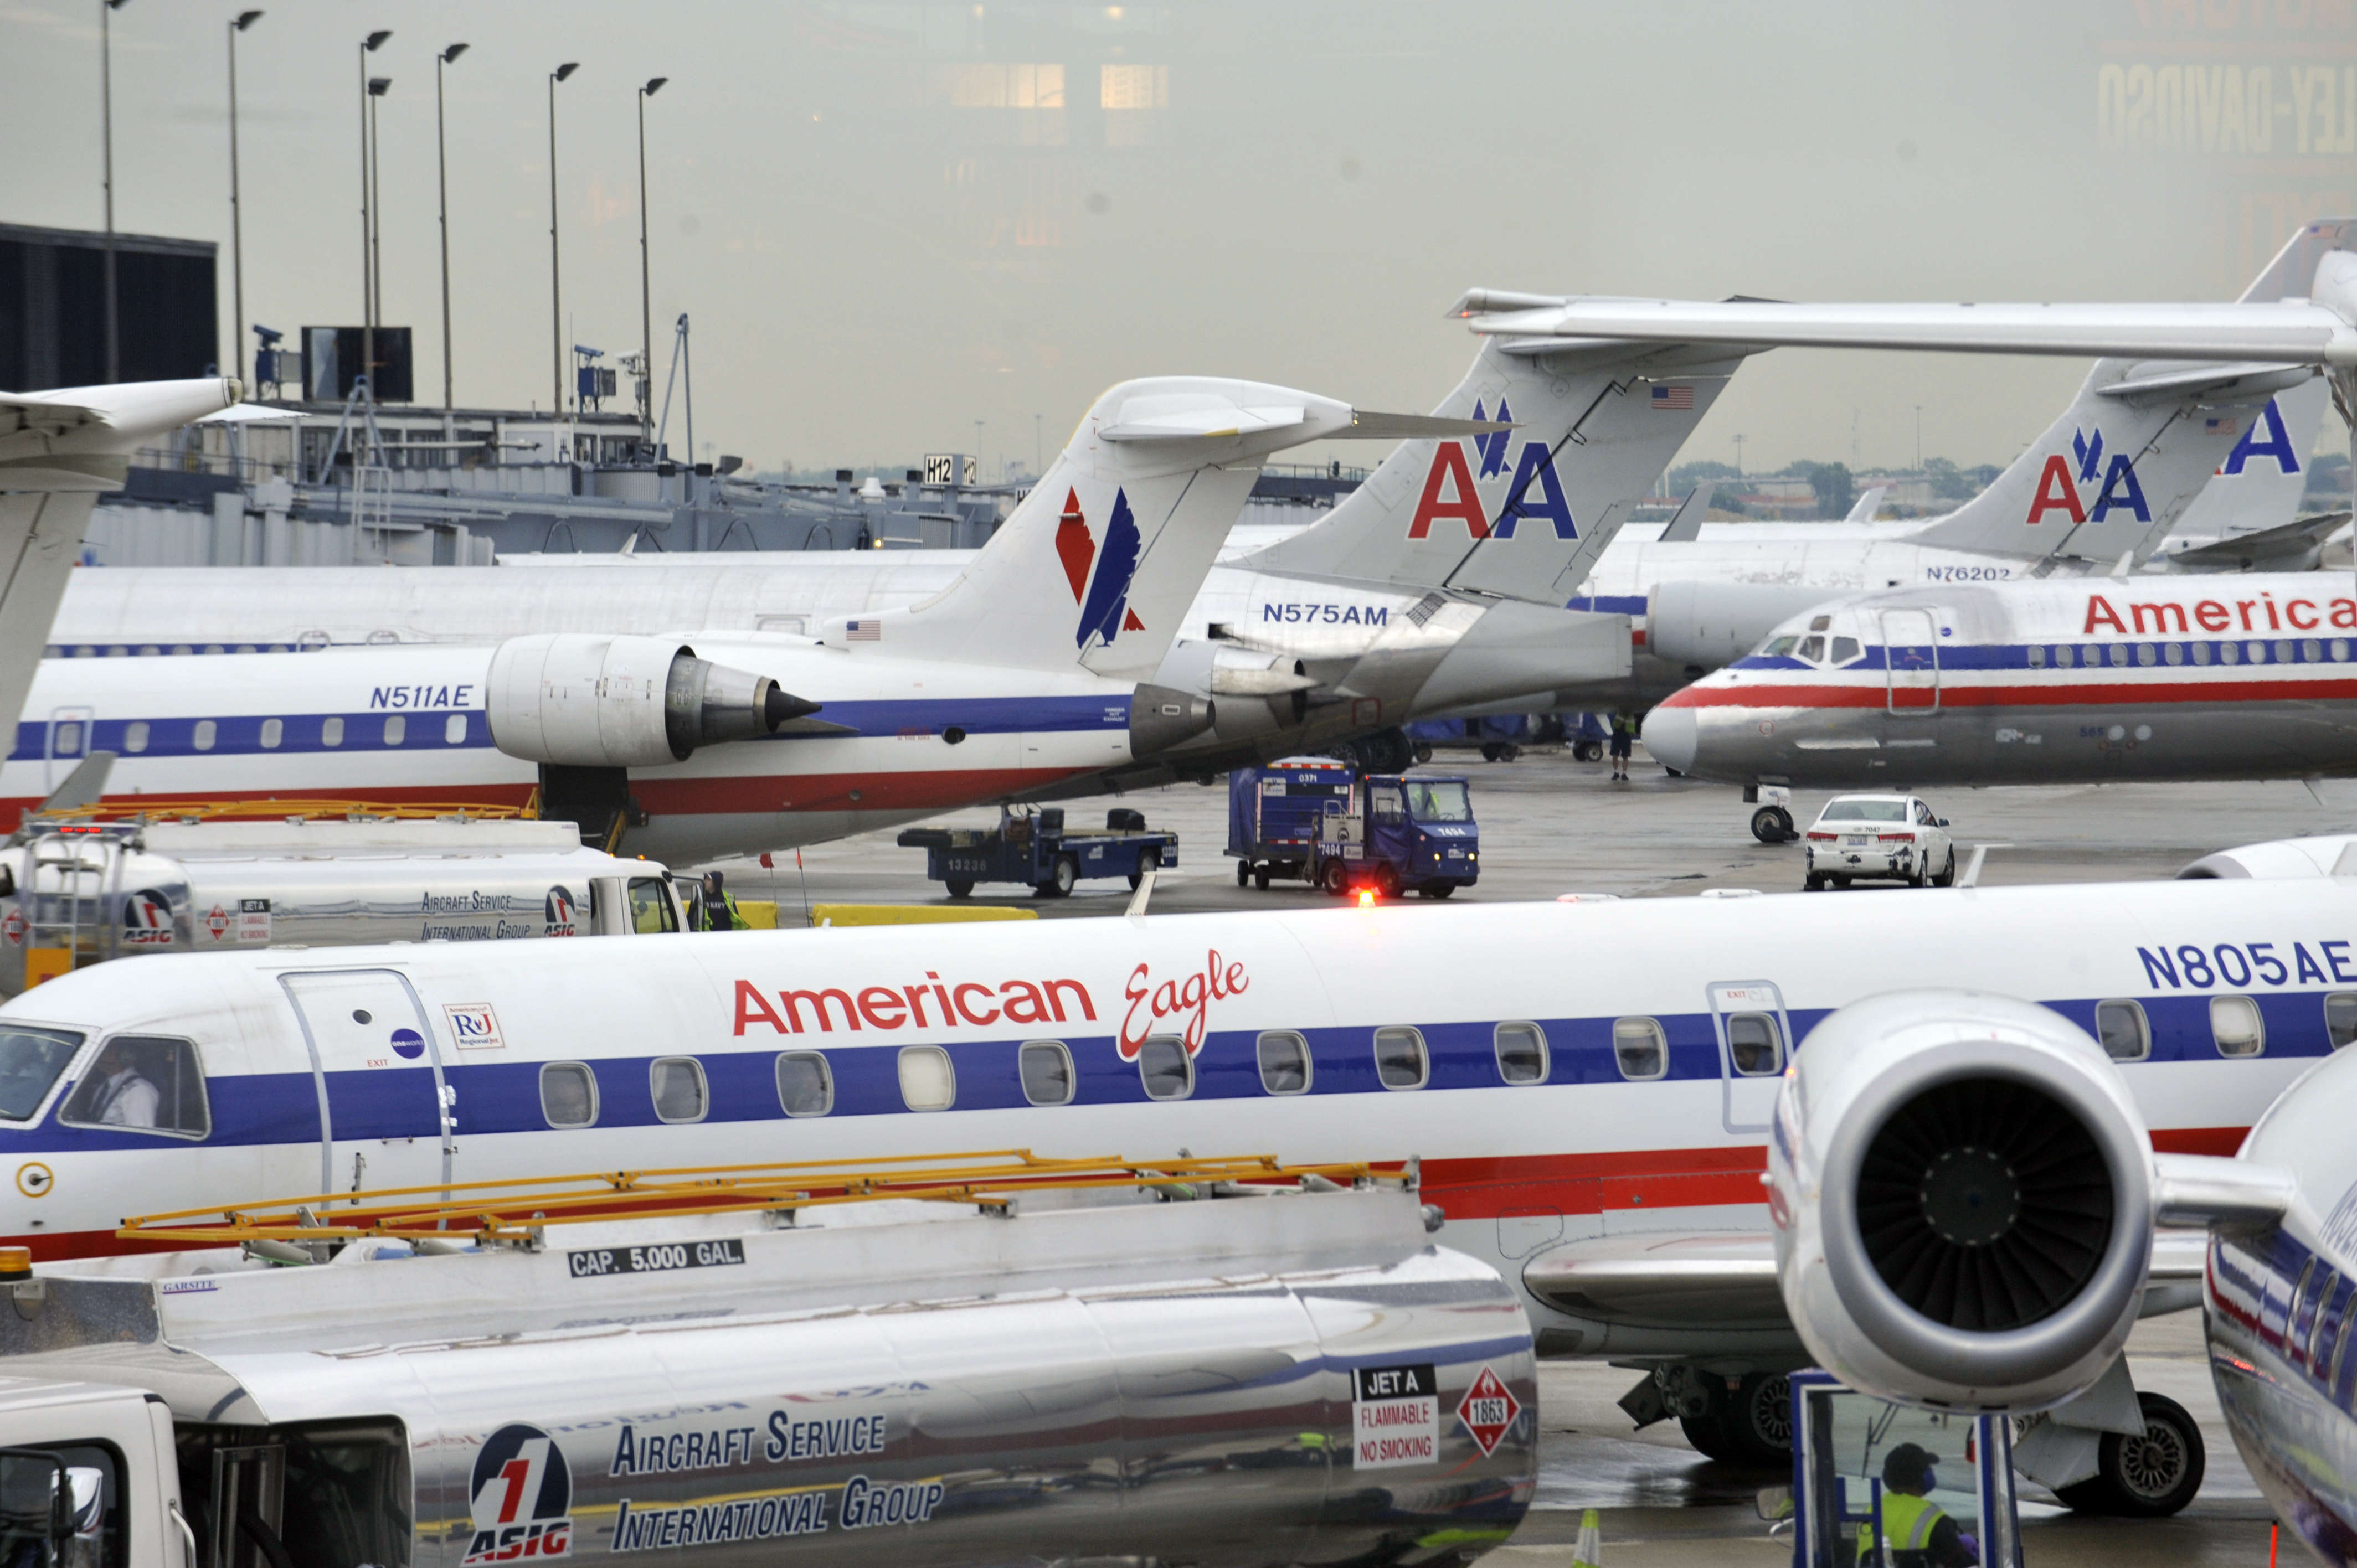 """Travel analyst Henry Harteveldt said American Airlines """"is clearly putting its profitability ahead"""" of the health of passengers and its own employees. American Airlines planes are seen here at O'Hare Airport."""